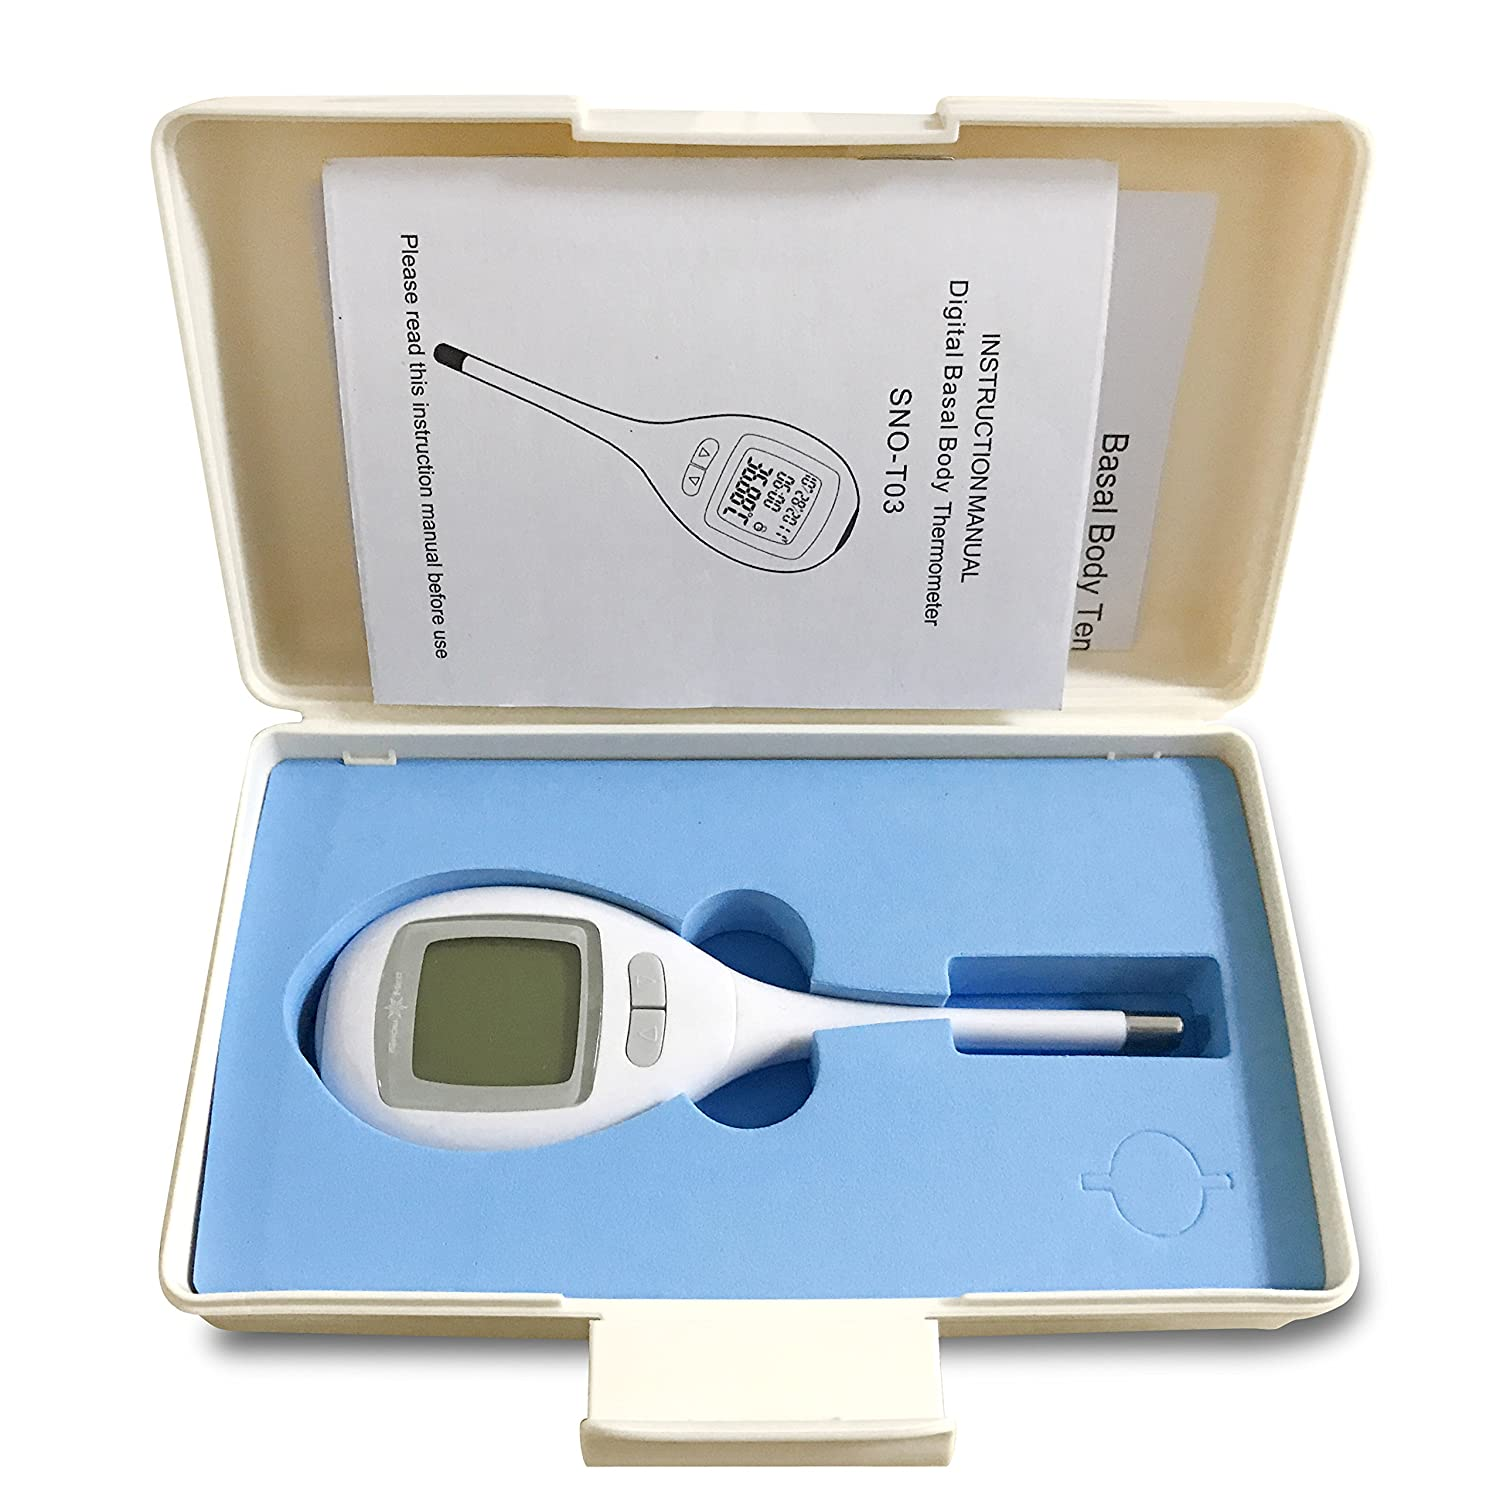 Amazon.com: iSnow-Med High Accuracy (0.09°F) Digital Basal Thermometer to Test Basal Body Temperature (BBT), 60 Days Memory for Ovulation Chart Track, ...